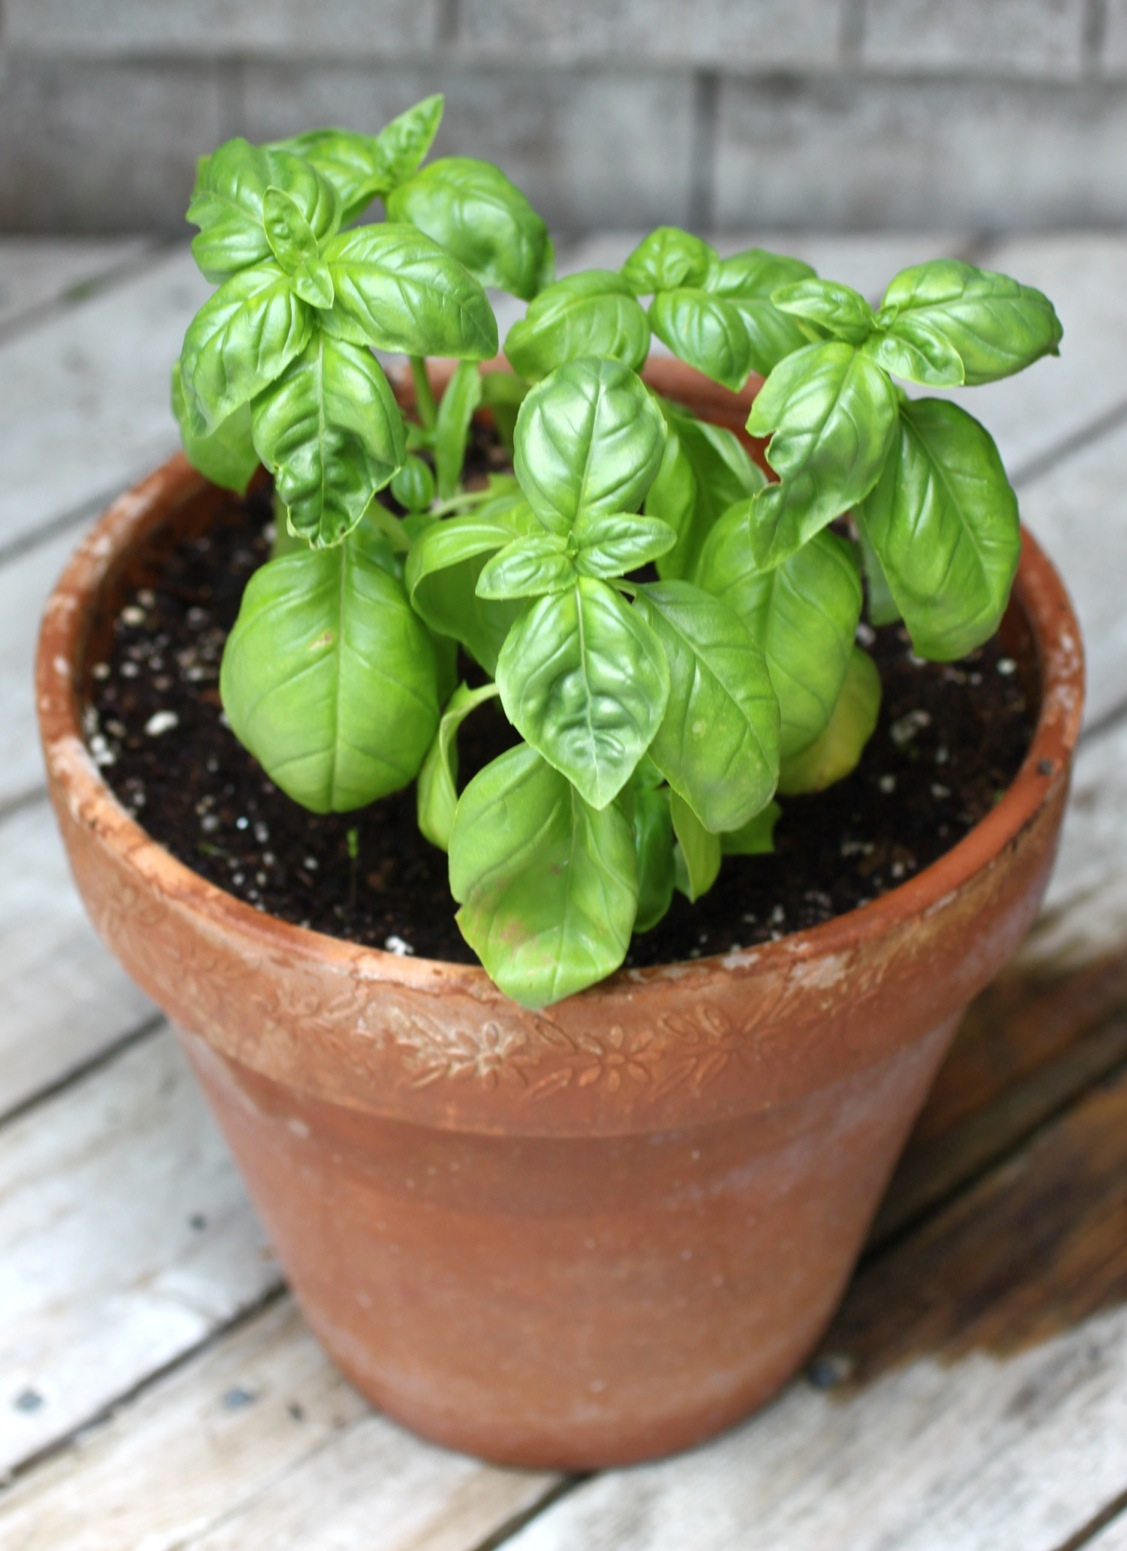 How To Grow Basil Indoors | Gardening Tips And Tricks To Become A Successful Homesteader